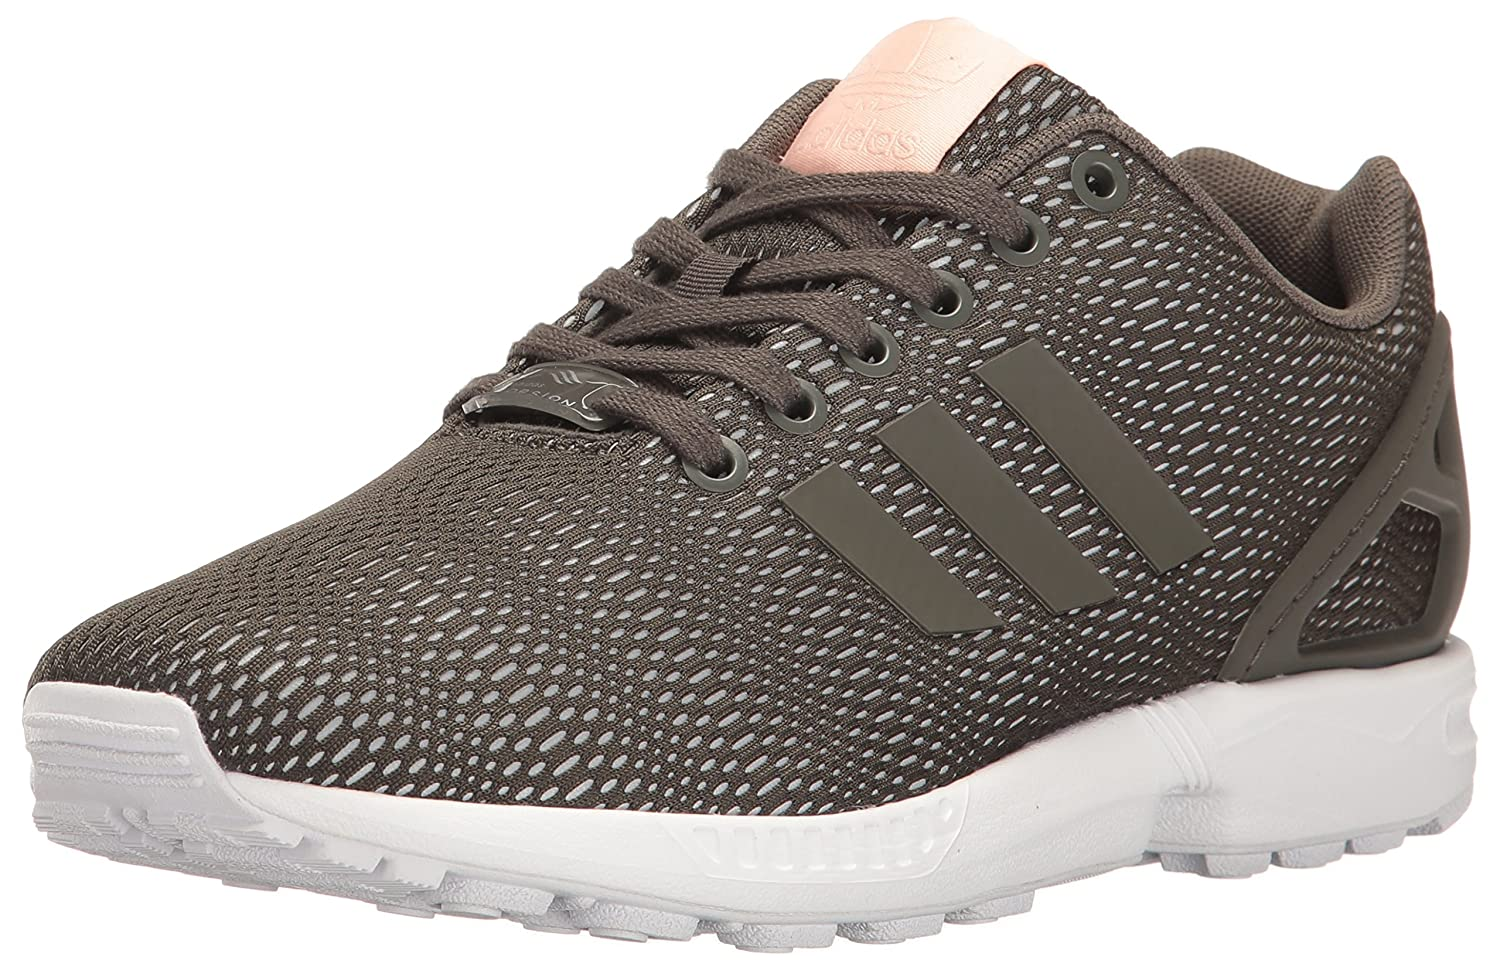 check out 396c1 9afce adidas Originals Women s ZX ZX ZX Flux W Lace-Up Fashion Sneaker B01HNHPUT8  10.5 M US Utility Grey Utility Grey White 8251d3